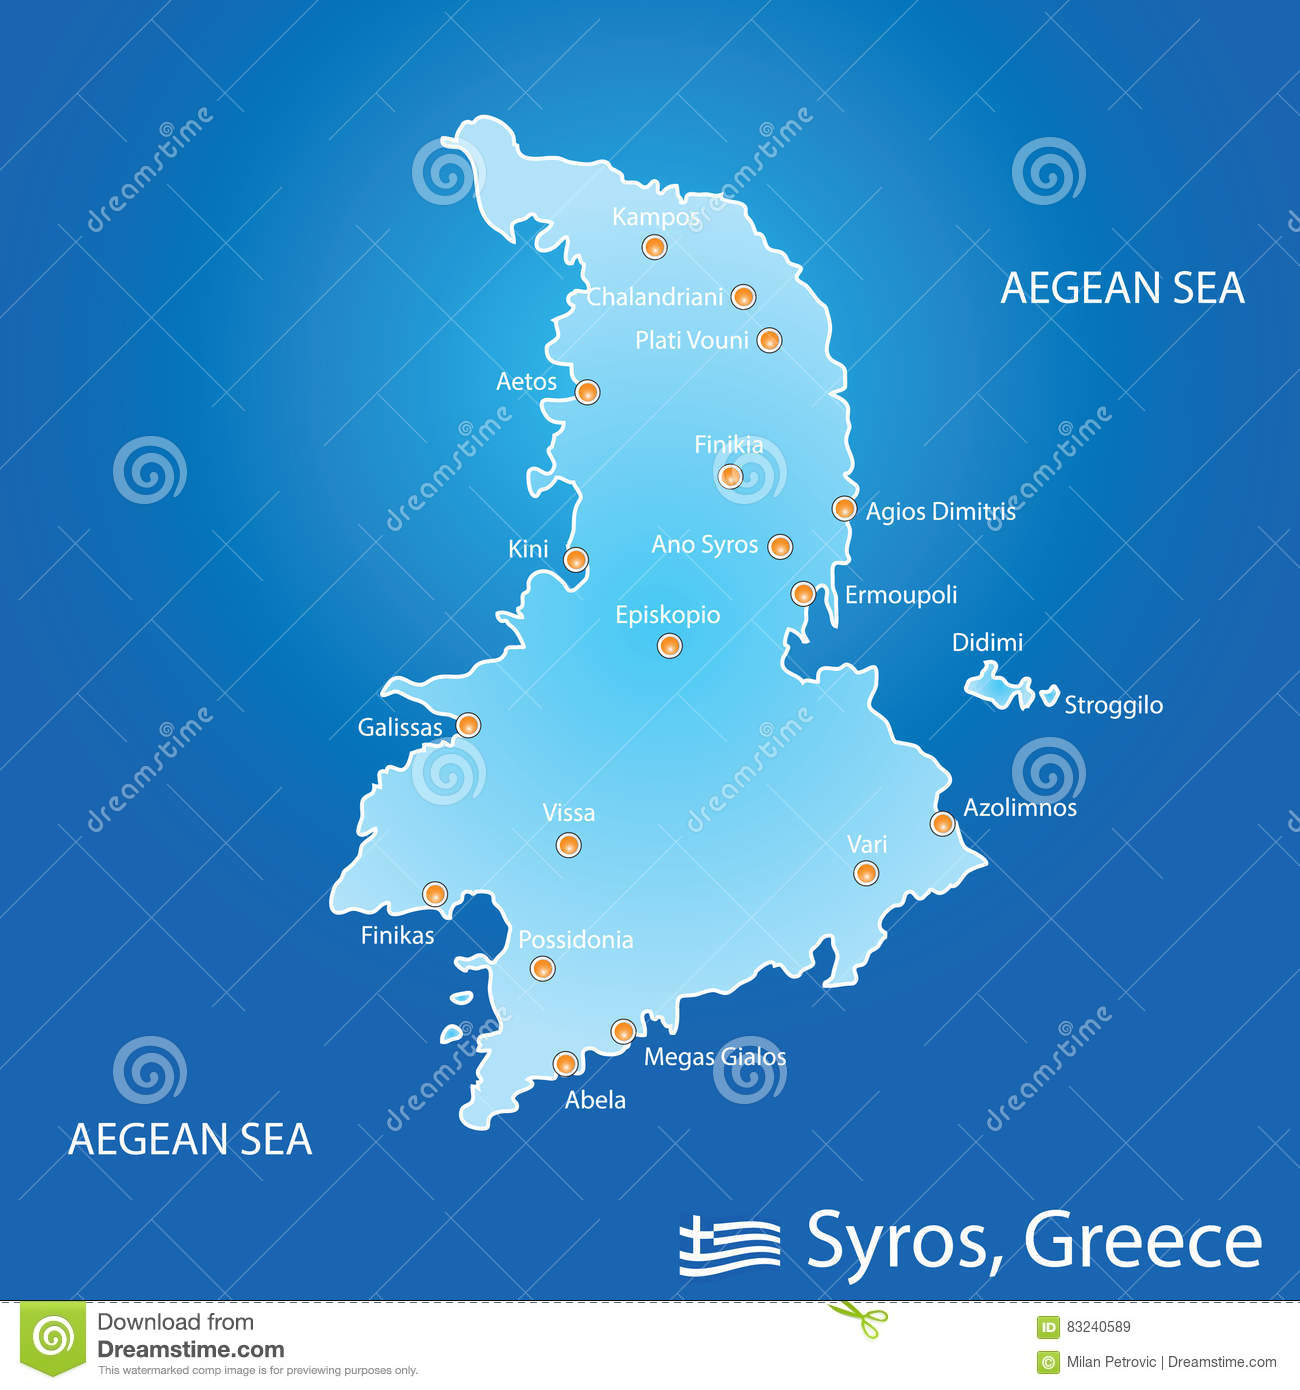 Island Of Syros In Greece Map Illustration In Colorful Stock Vector